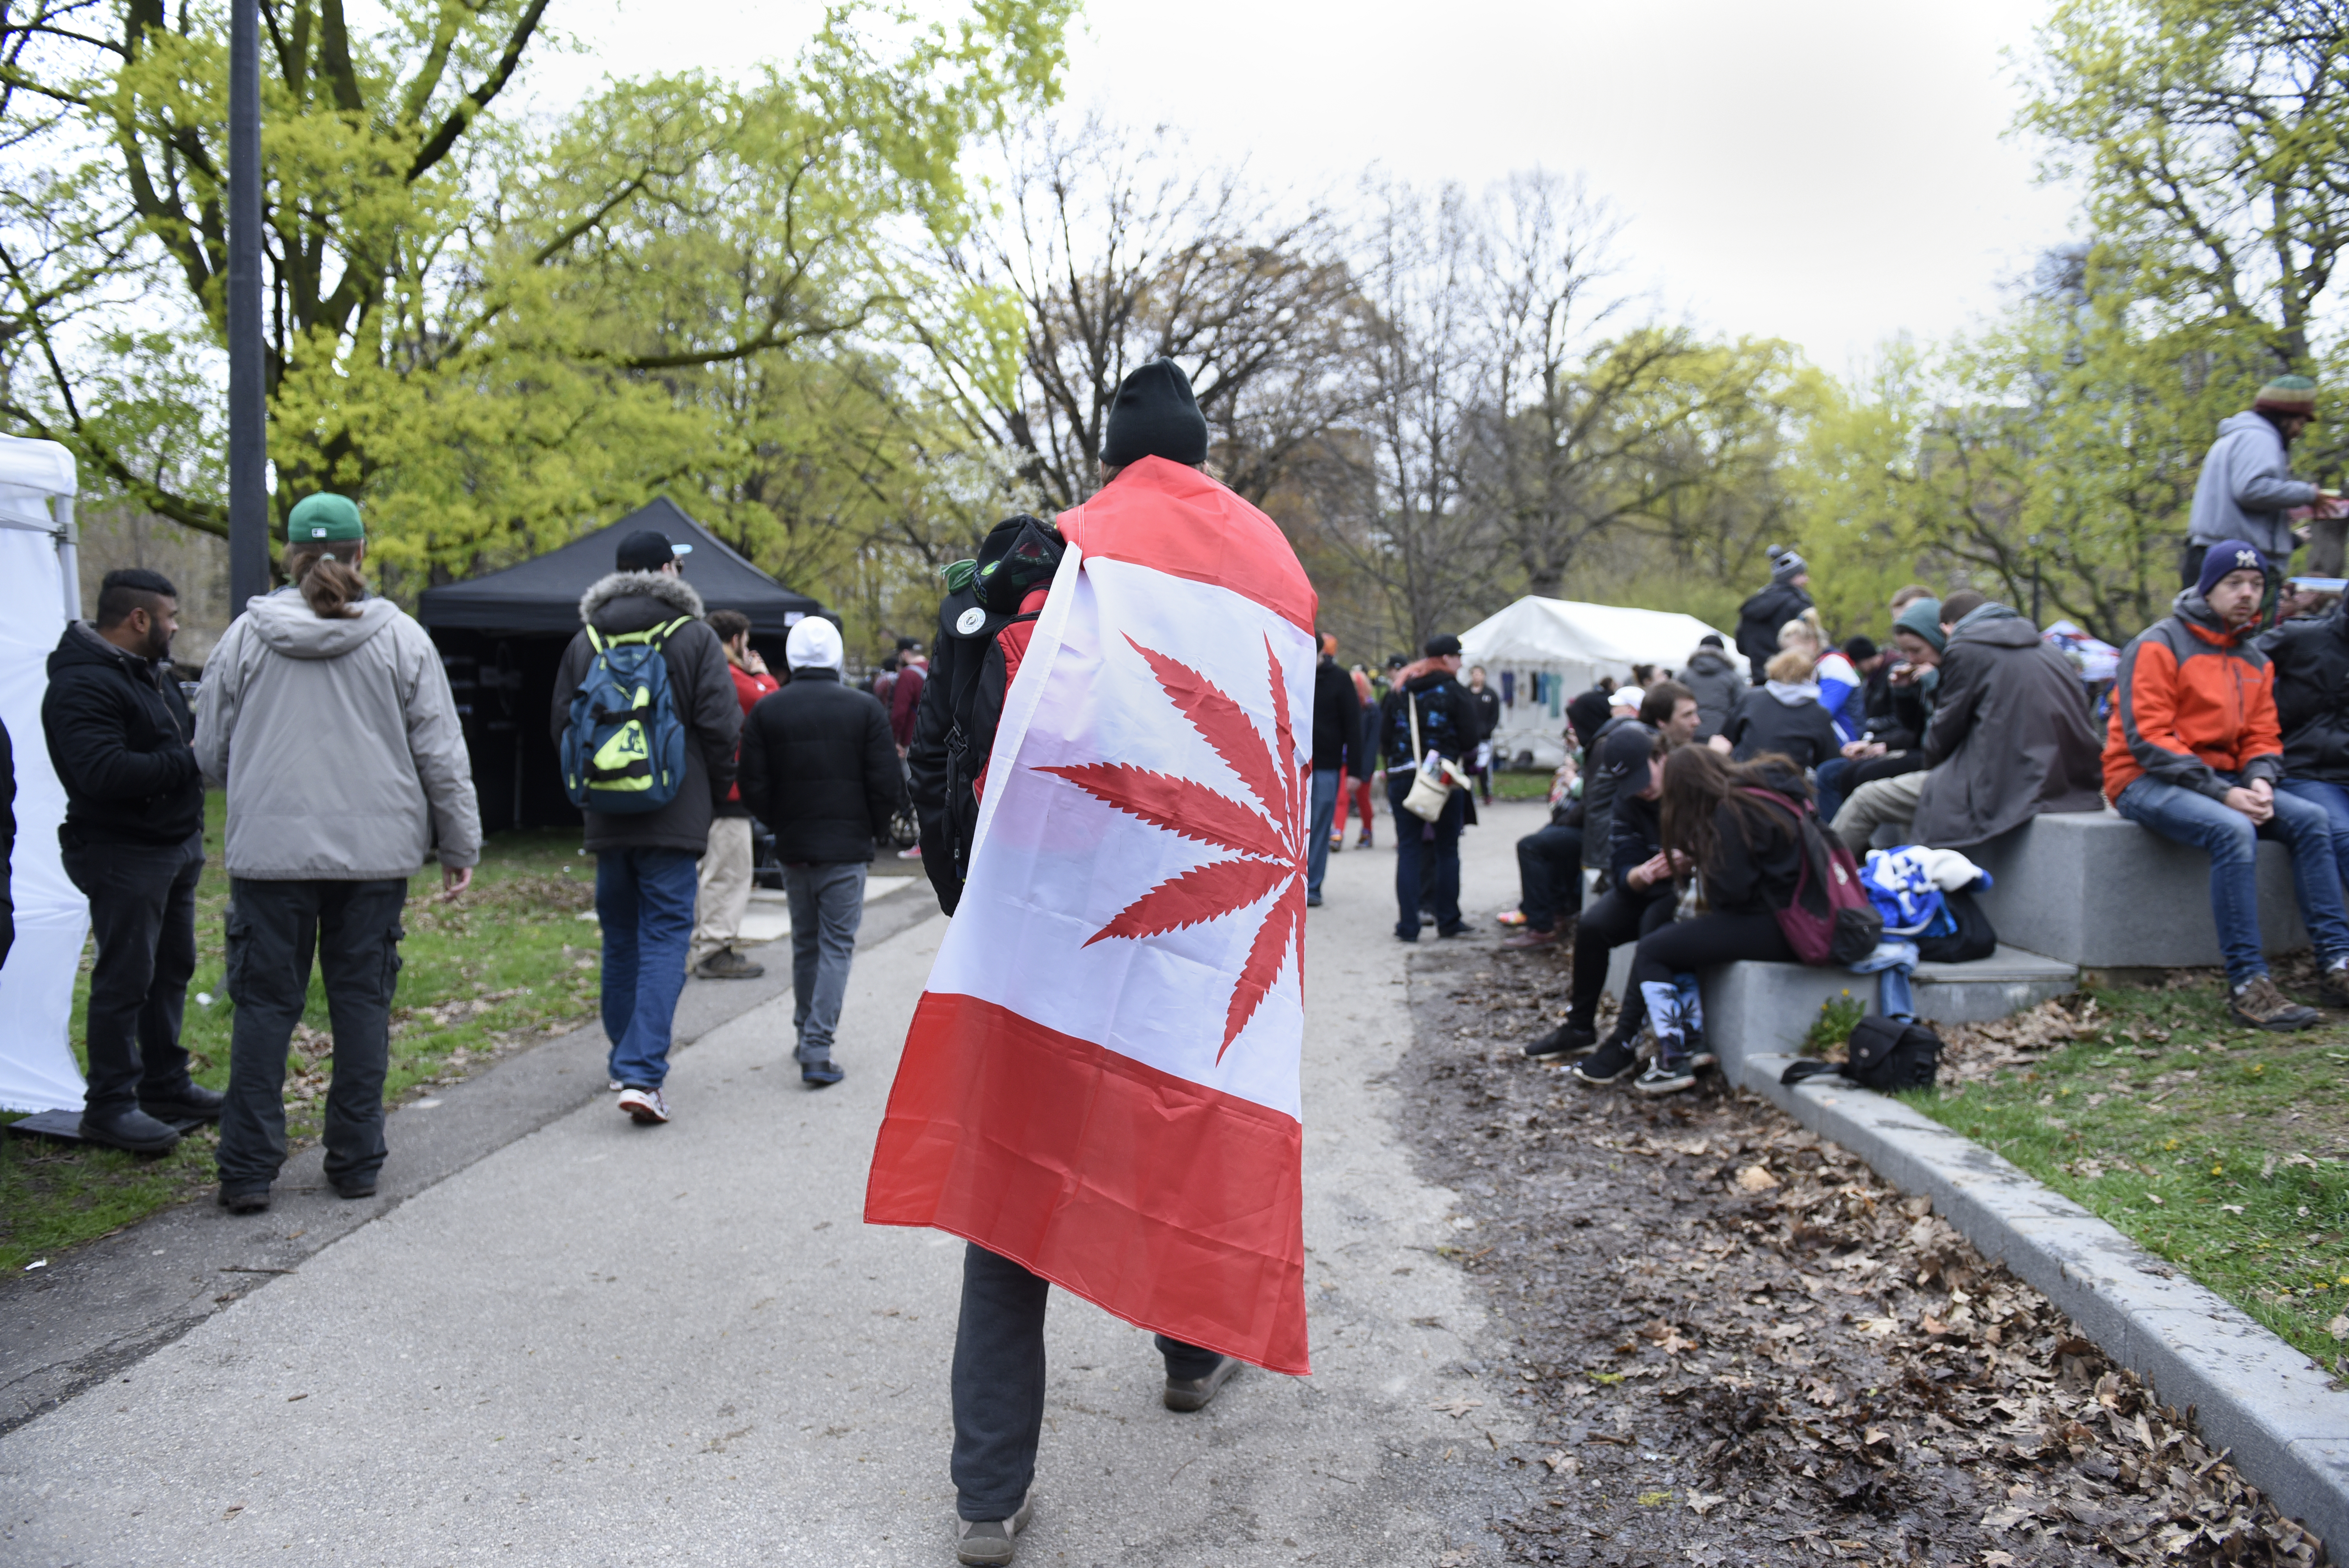 A man walking wrapped with a replica of a Canadian flag where the maple leaf has been replaced by Marijuana leaves during the Global Marijuana March in Toronto.